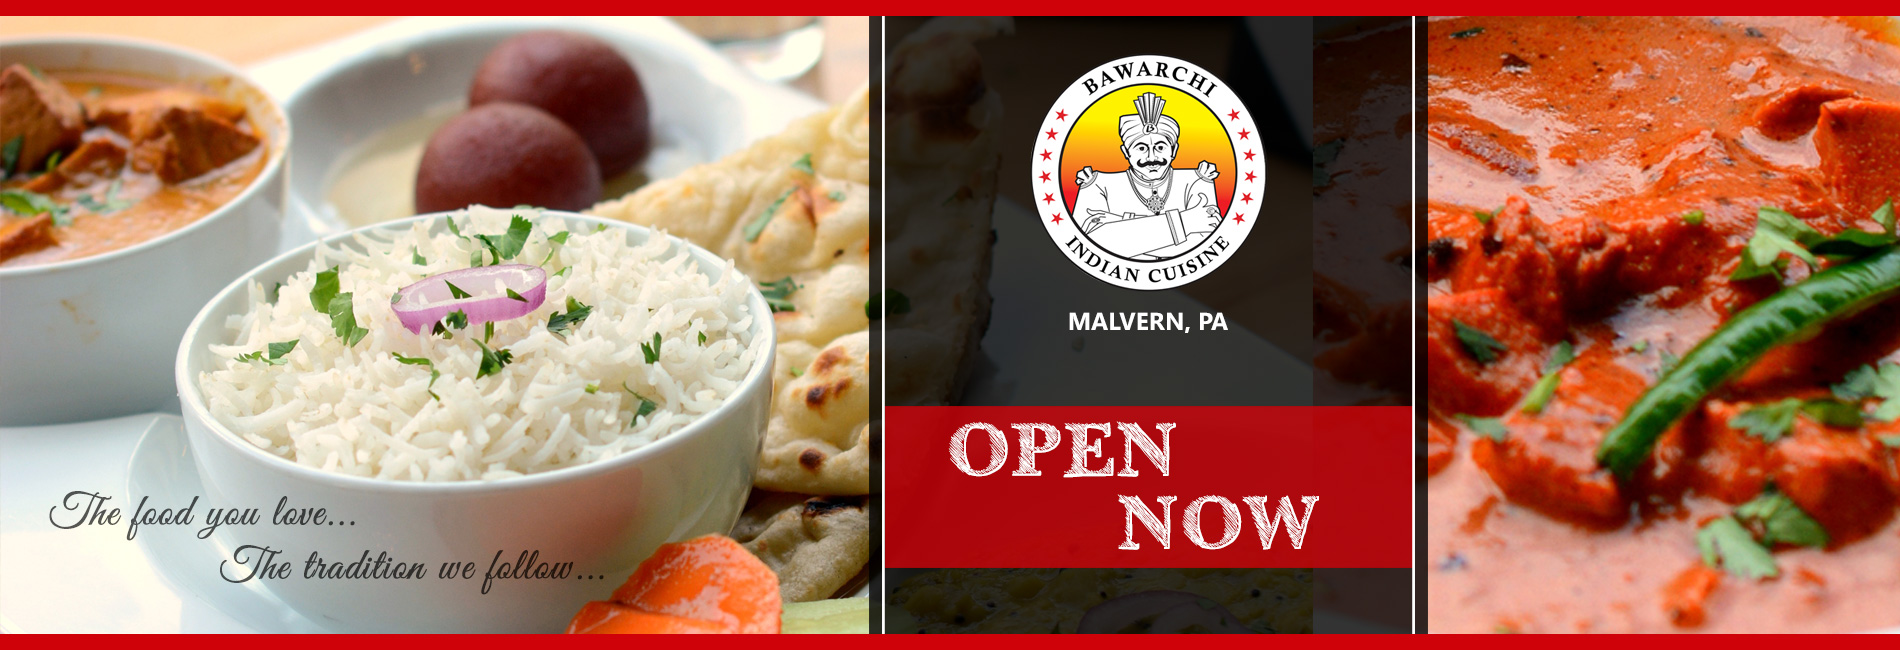 Bawarchi Now Open location - Malvern, PA